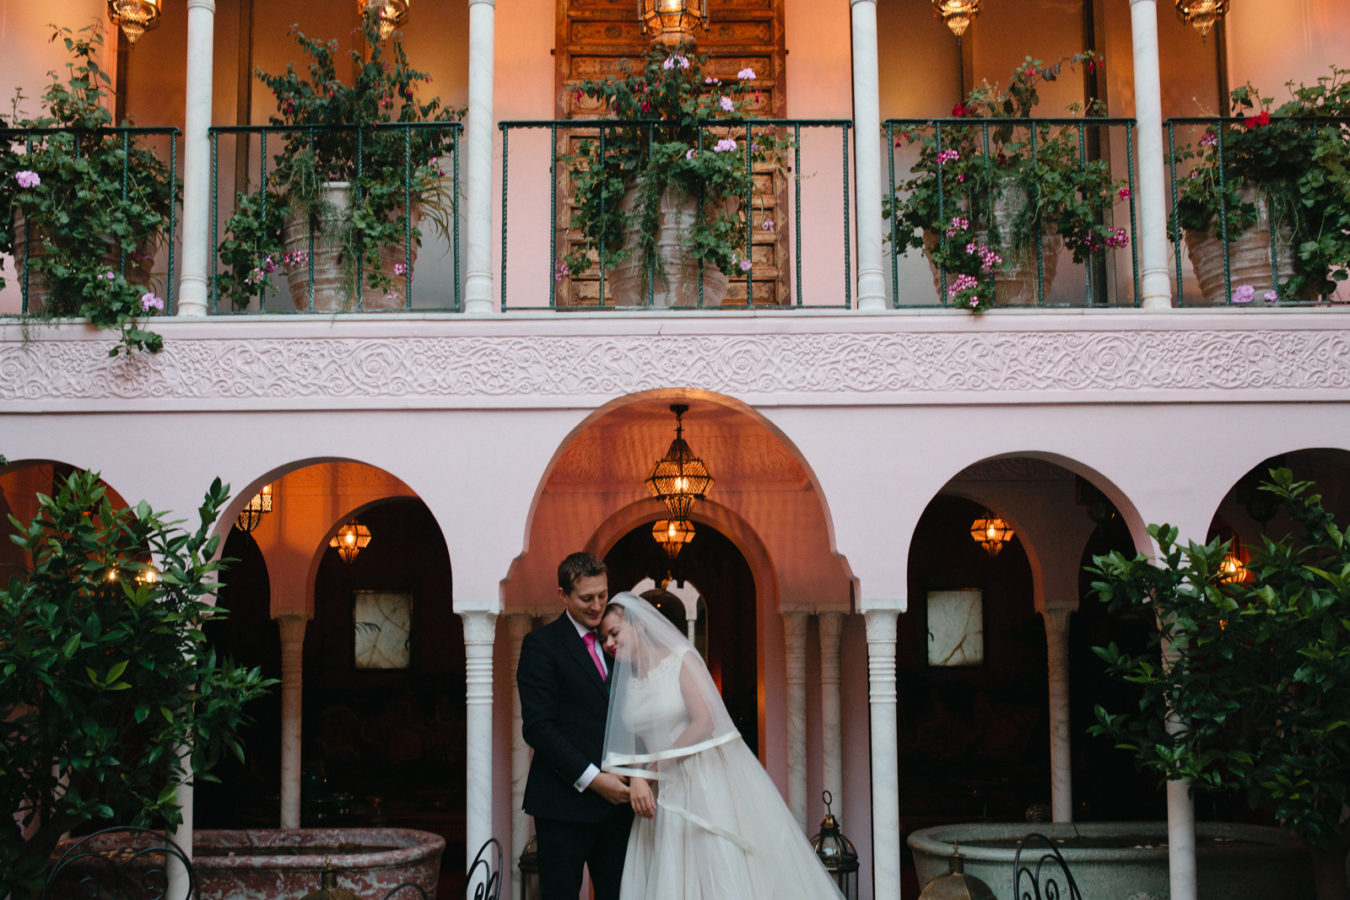 A bride and groom in the morrocan courtyard at Port Lympne wedding venue